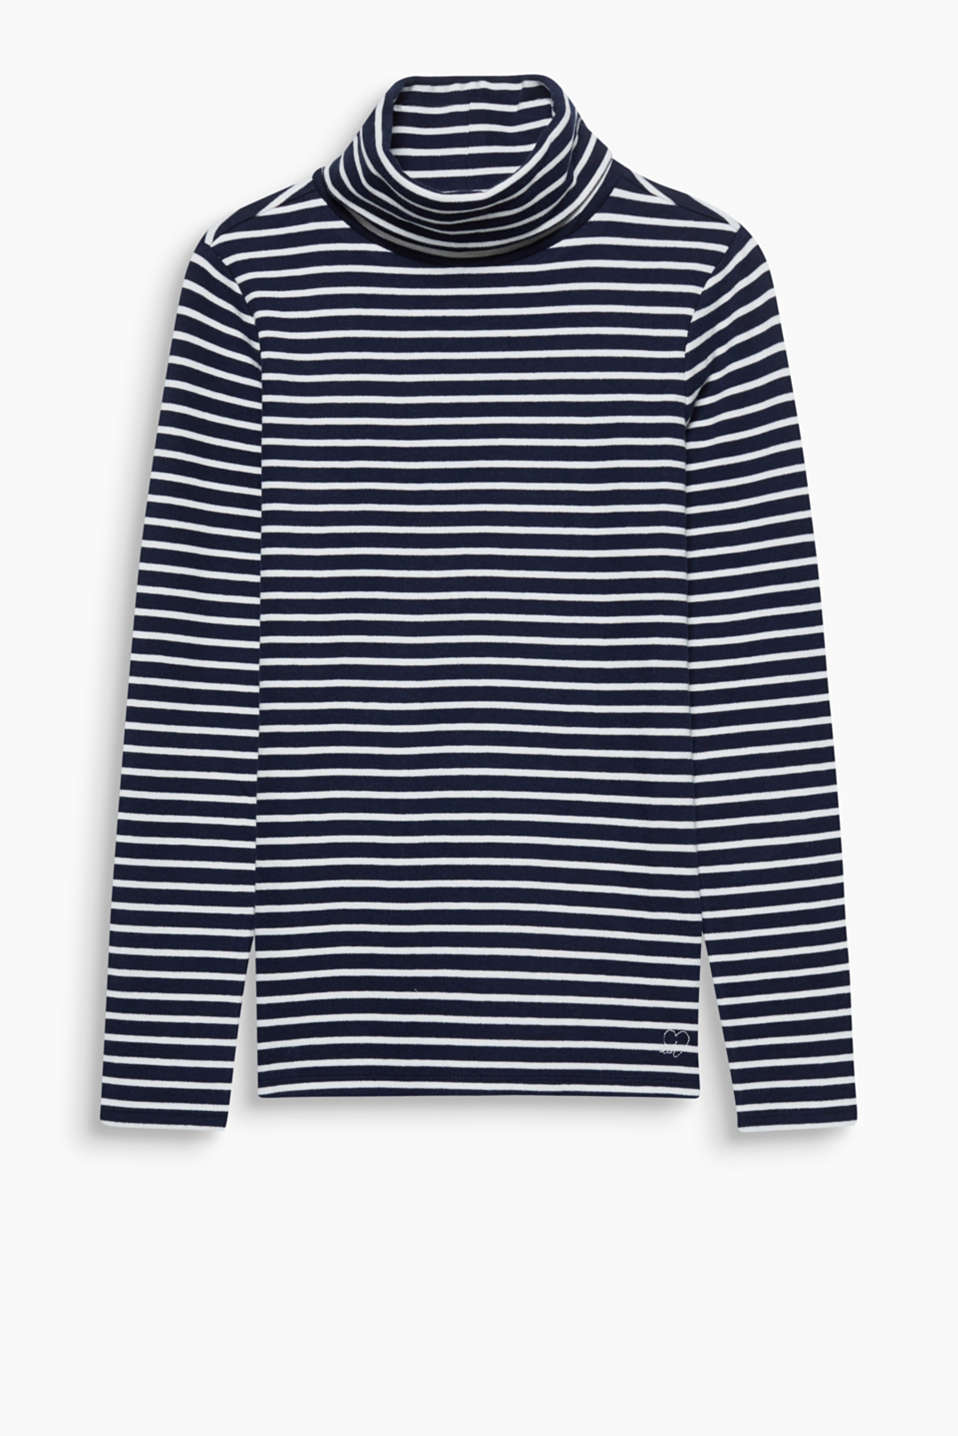 The fine ribbed texture and the cotton with a percentage of stretch make this fitted, striped polo neck unbeatably comfy!